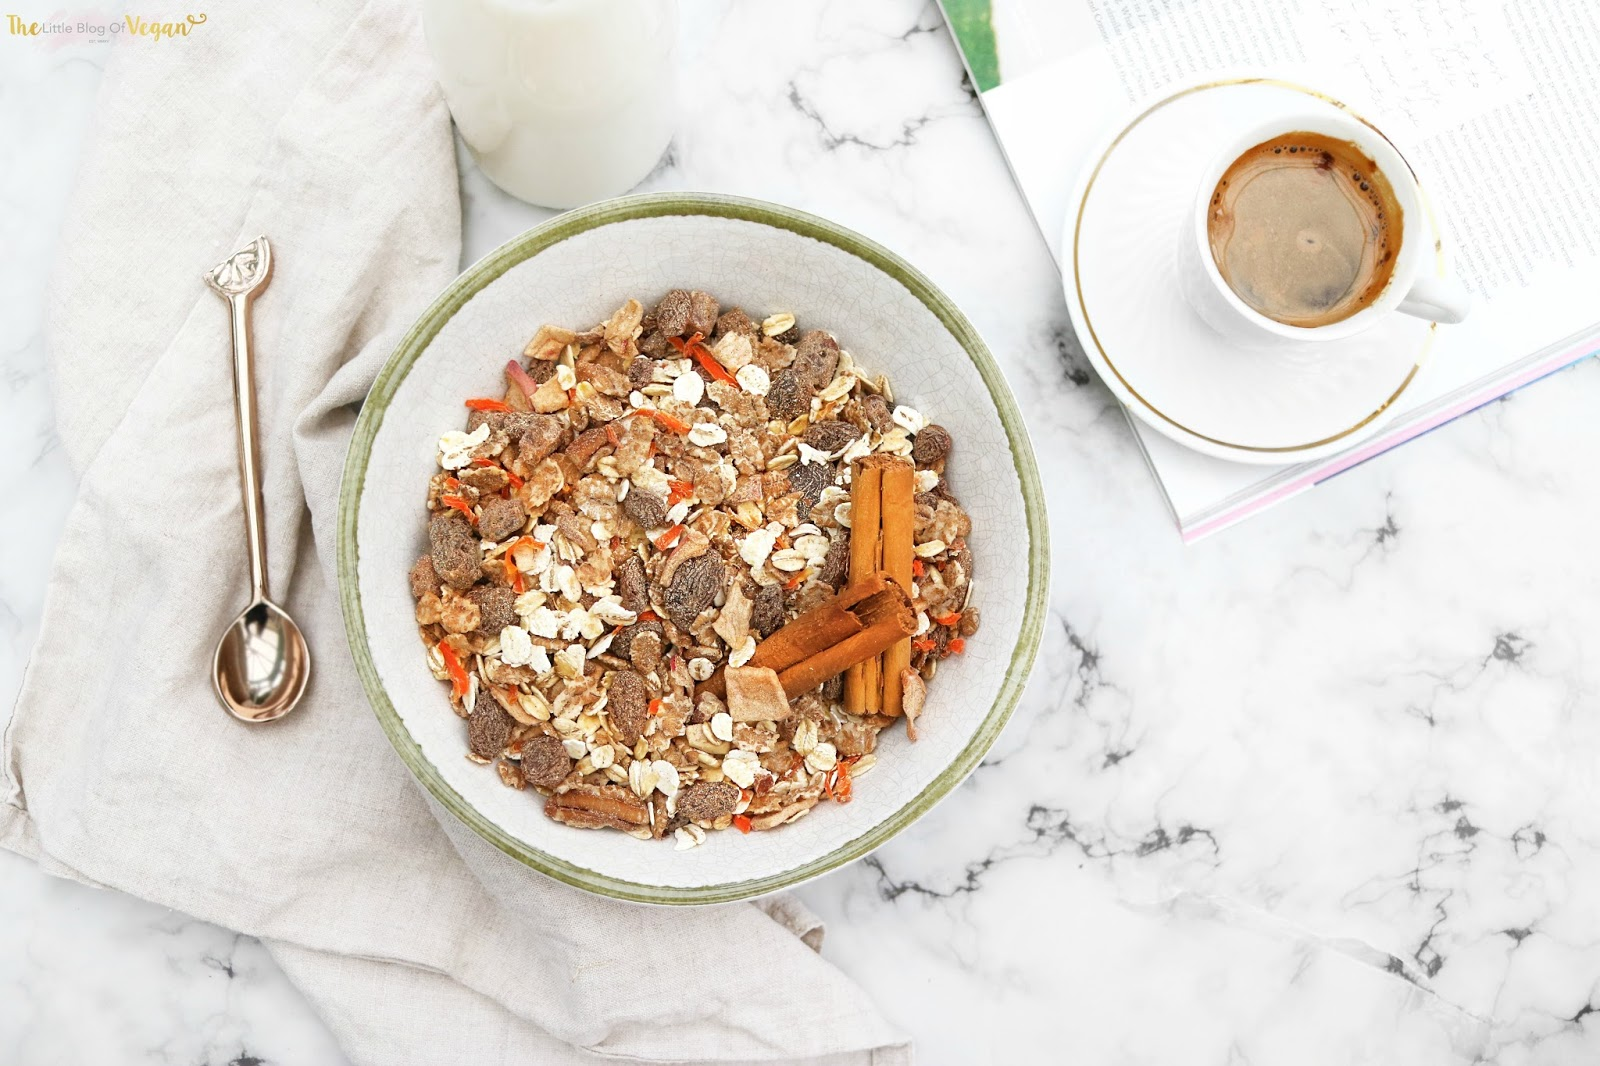 Theres a new vegan muesli on the block dorset cereals the dorset cereals is an award winning company who make a range of muesli granola and porridge in a huge variety of flavours from oats and nuts to chocolate ccuart Gallery